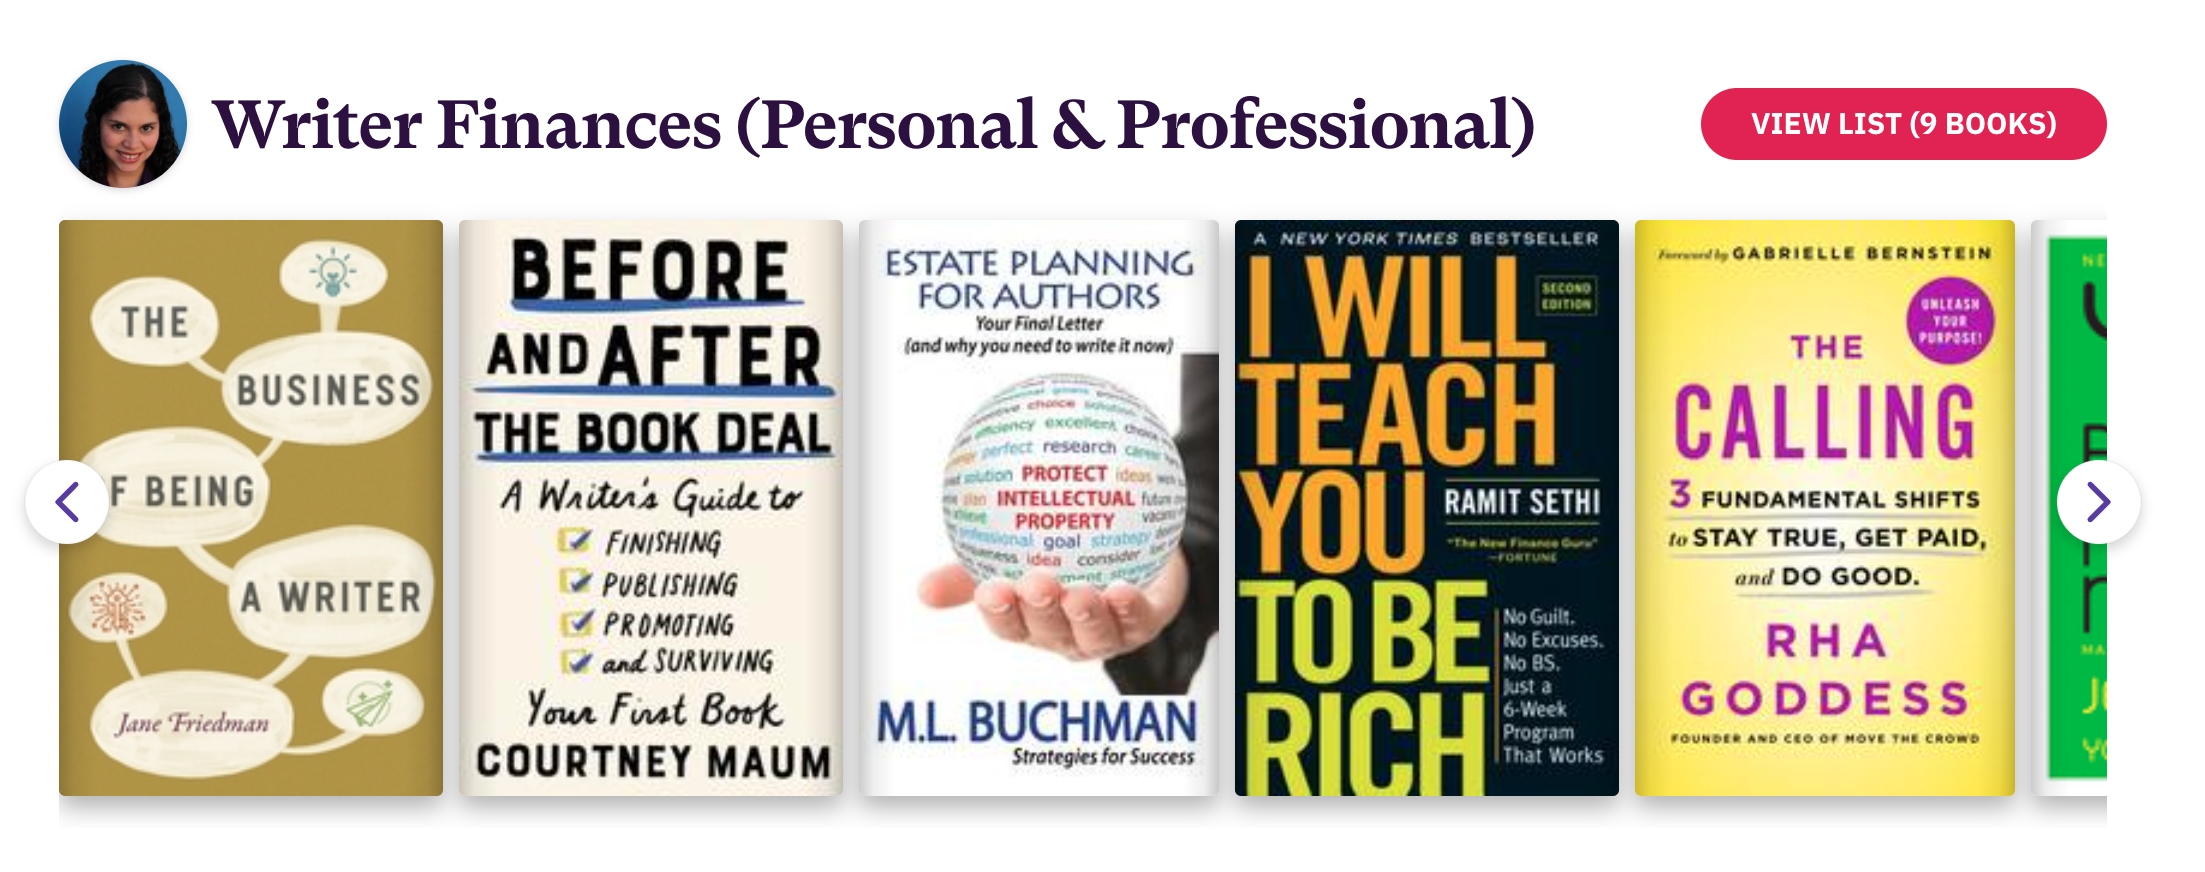 Book List of 9 books related to Writer Finances (Personal & Professional)